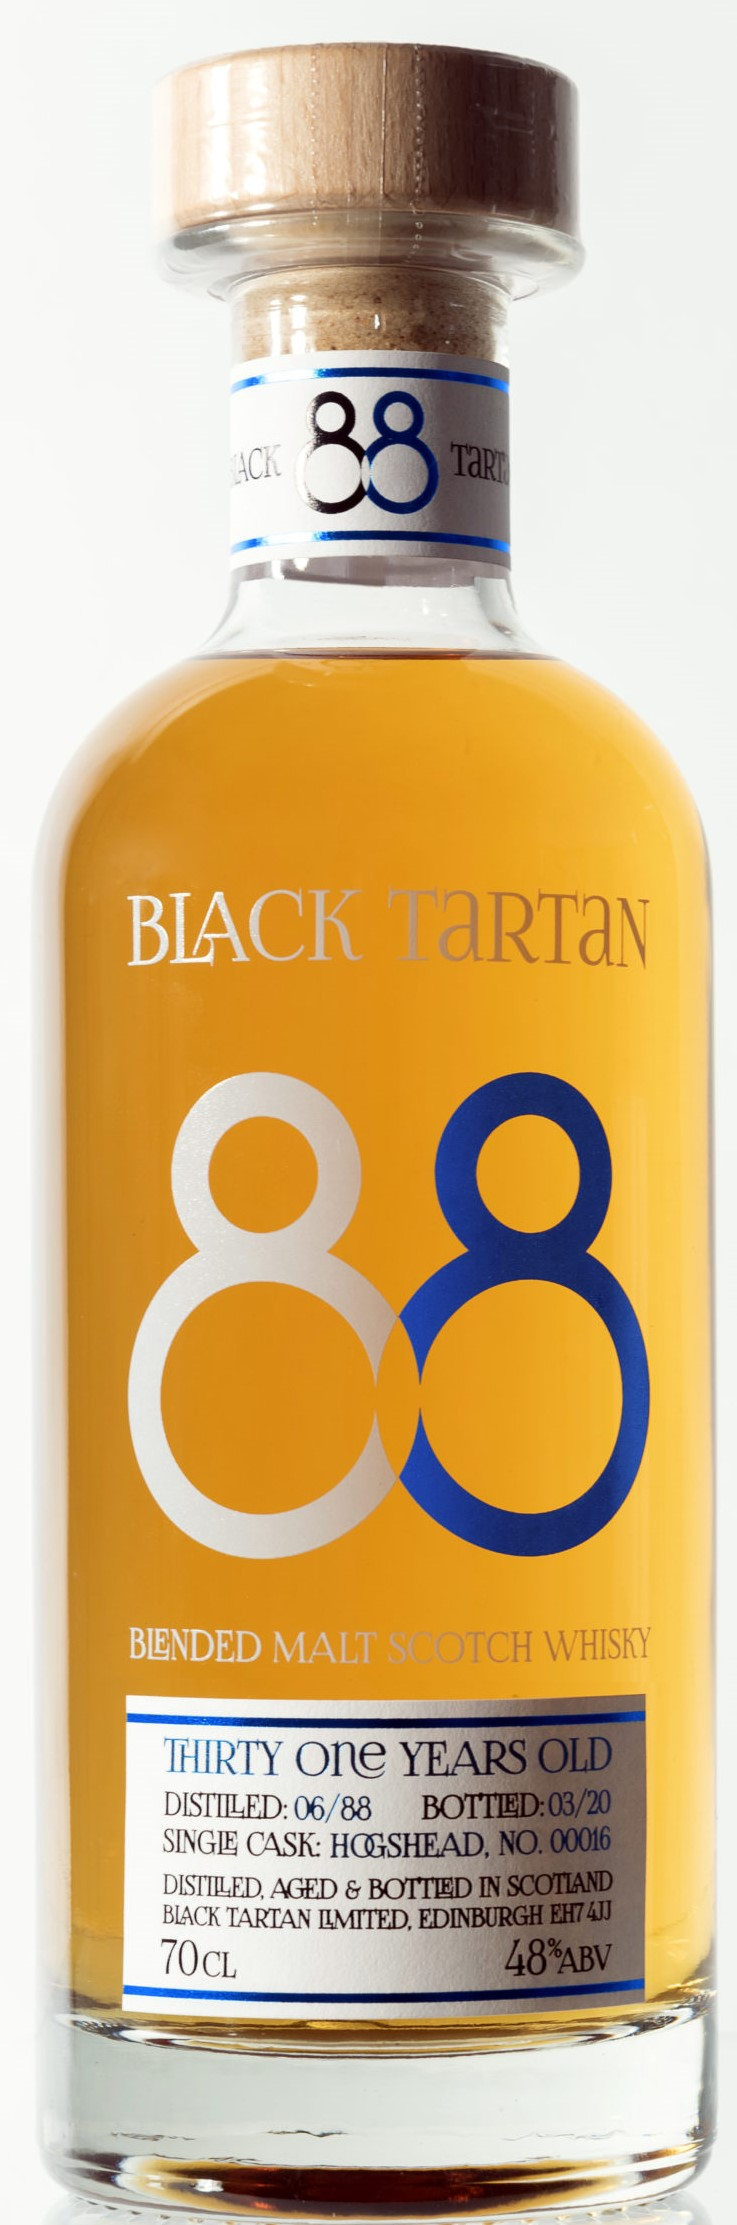 The Dramble reviews Skene Whisky Black Tartan 88